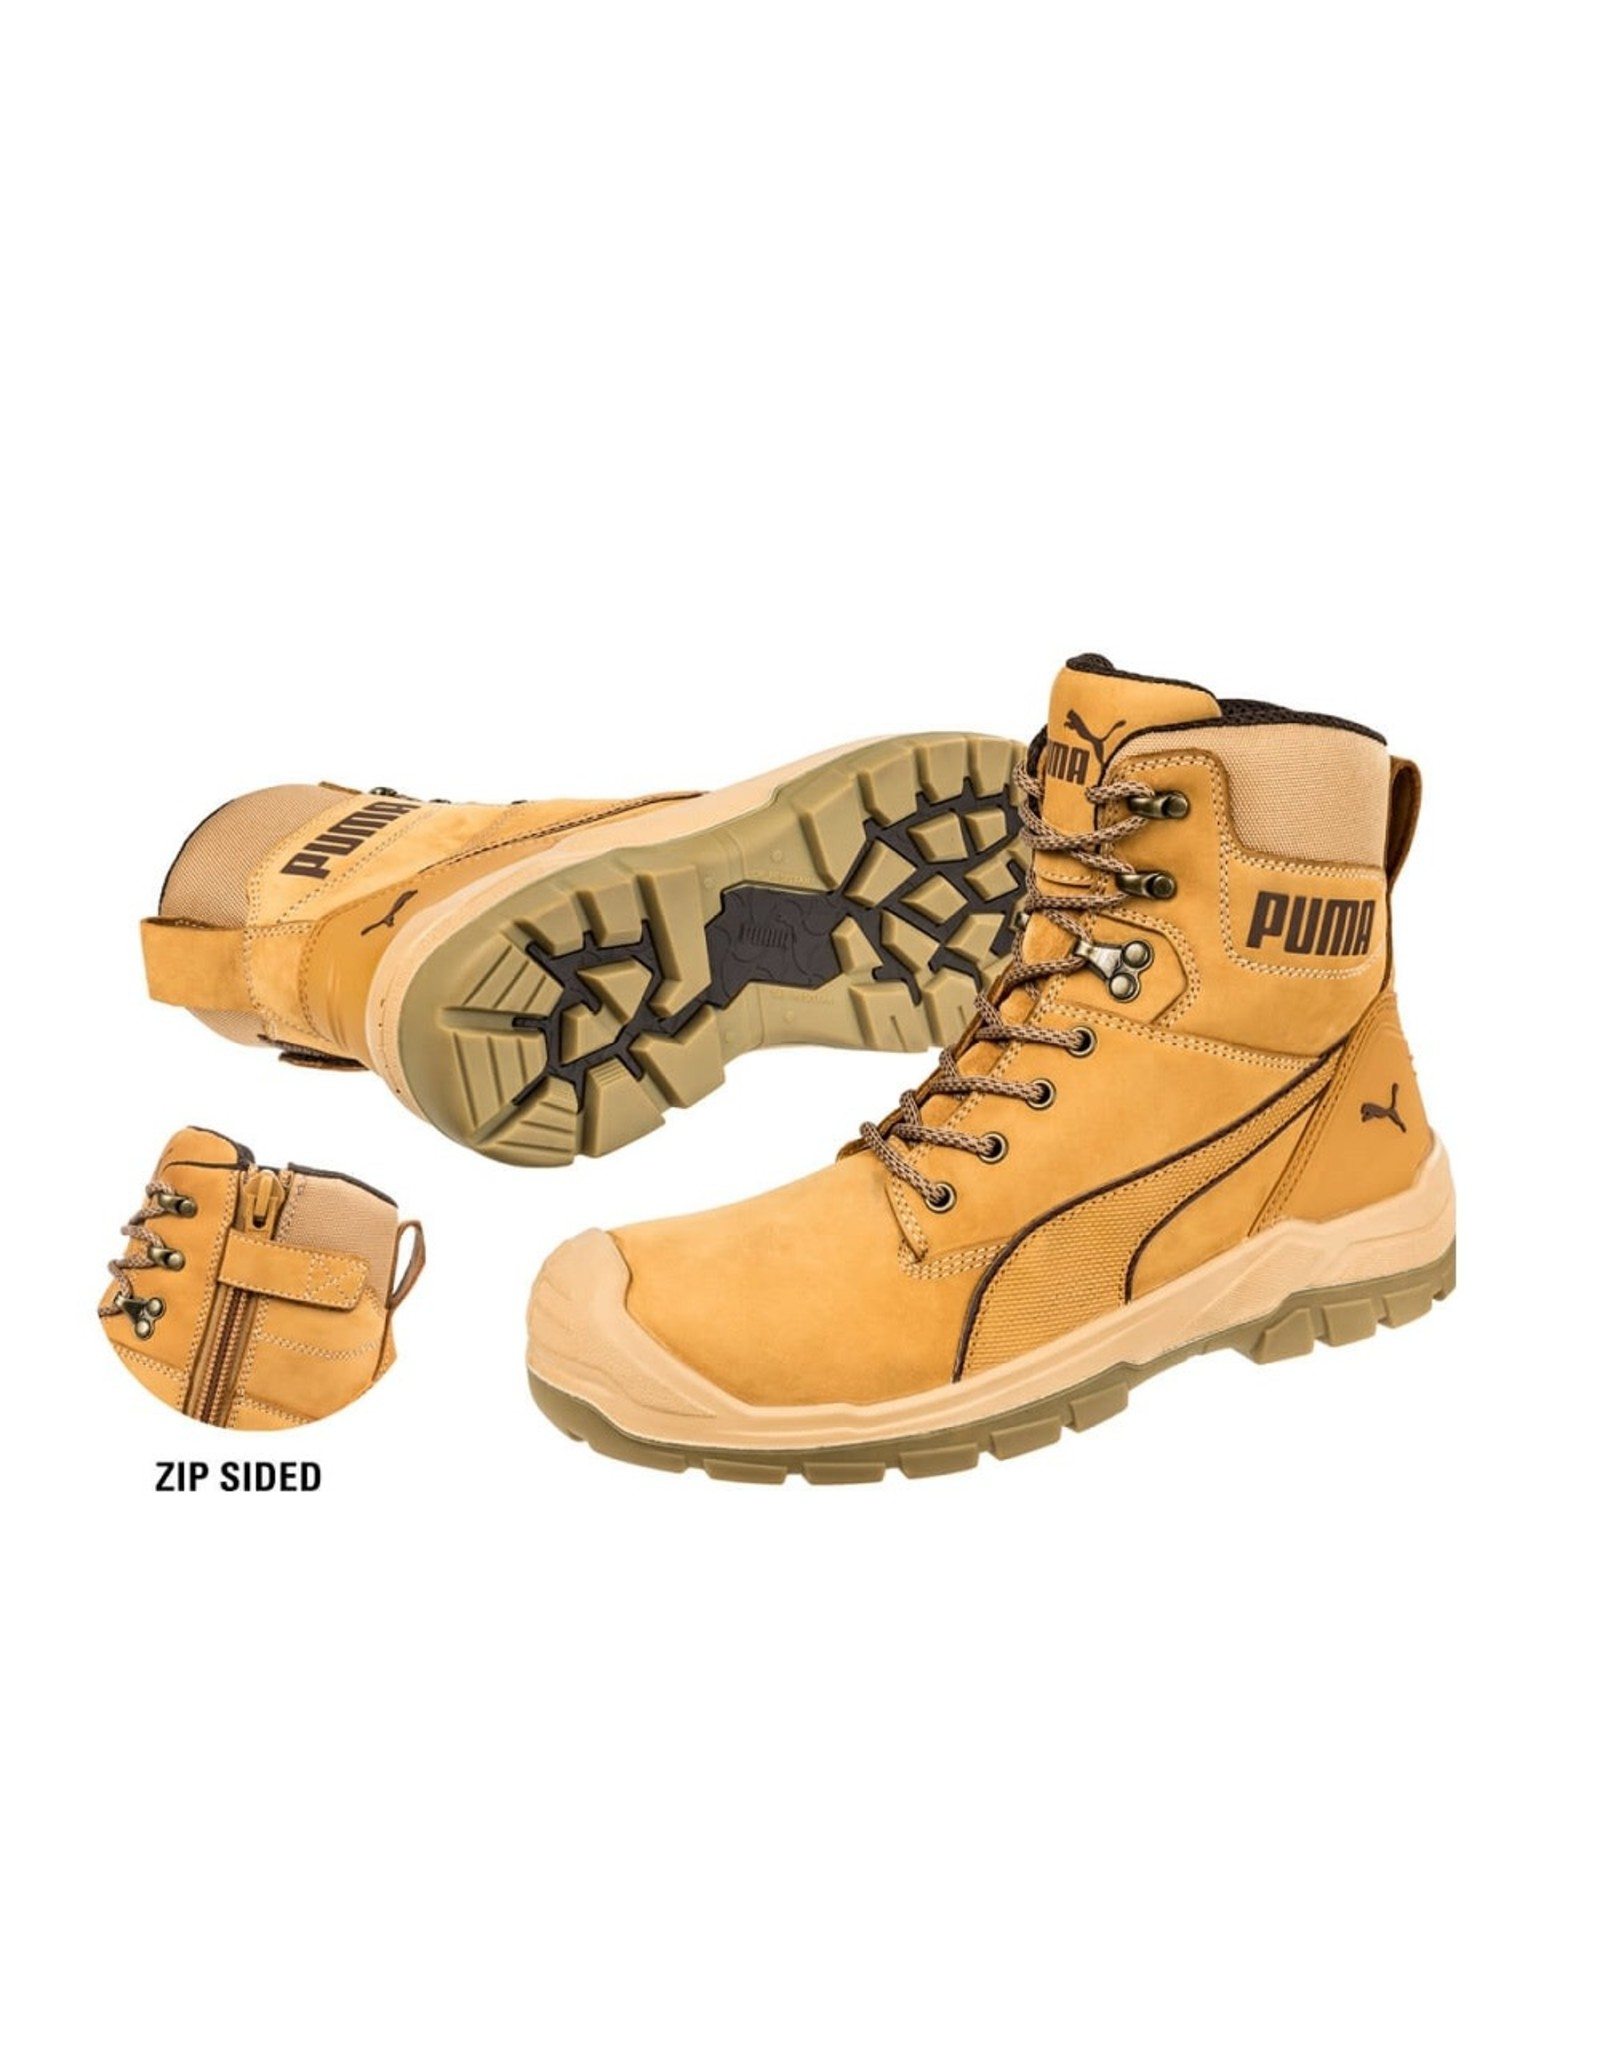 Puma Safety Puma Safety Conquest Wheat Waterproof Boot